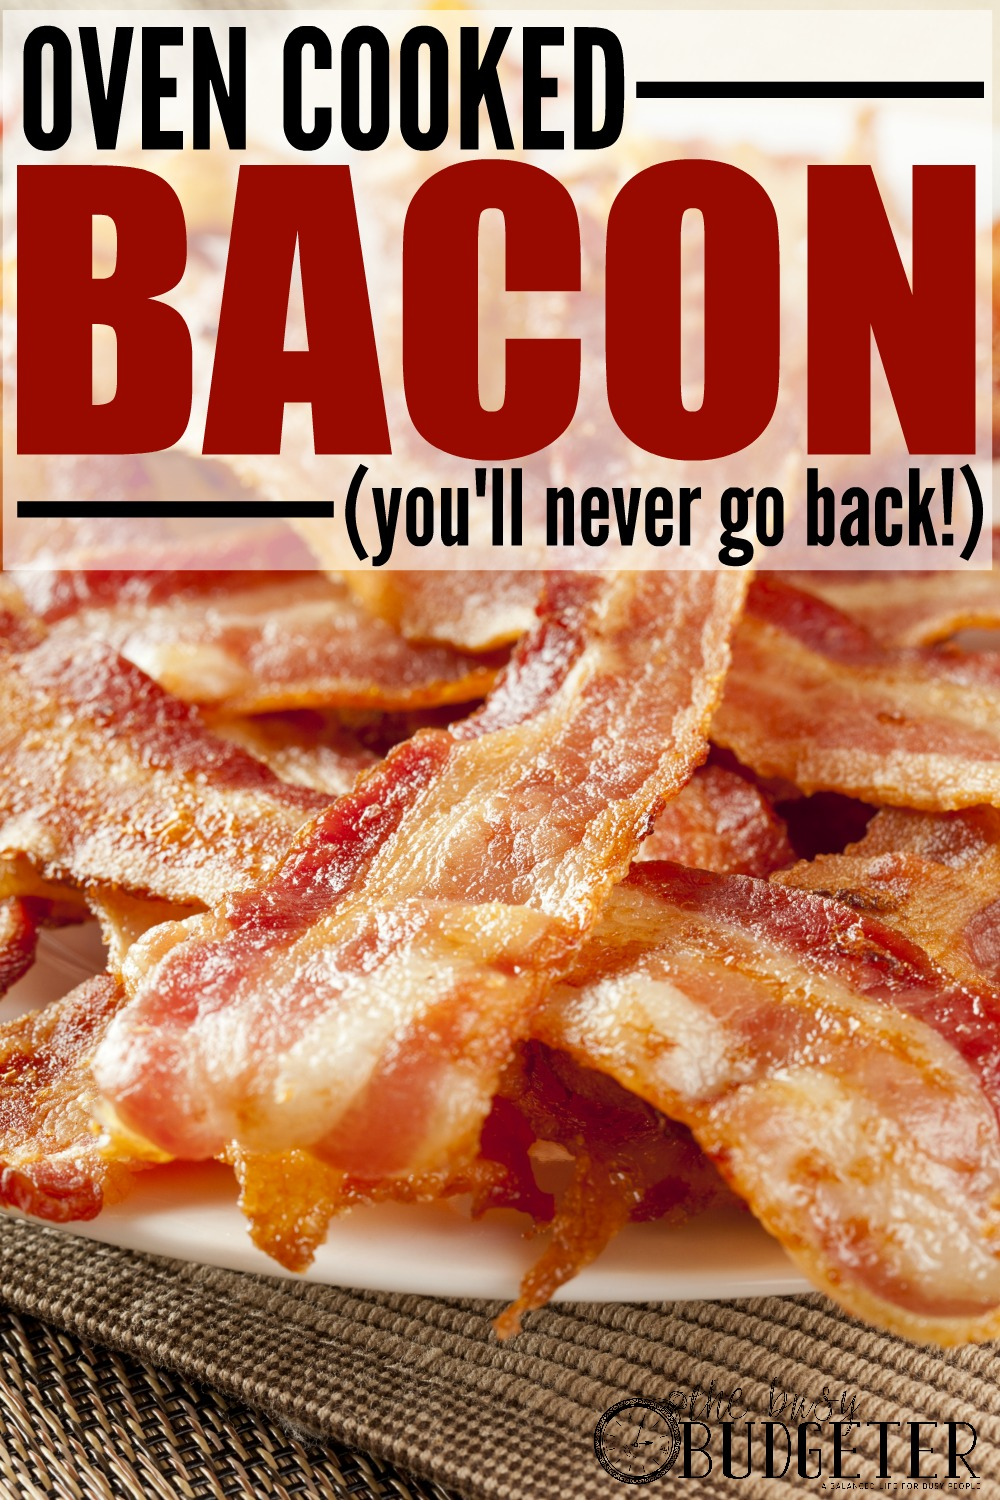 How To Batch Cook And Freeze Bacon Omg,pletely Agree! My Cousin Taught